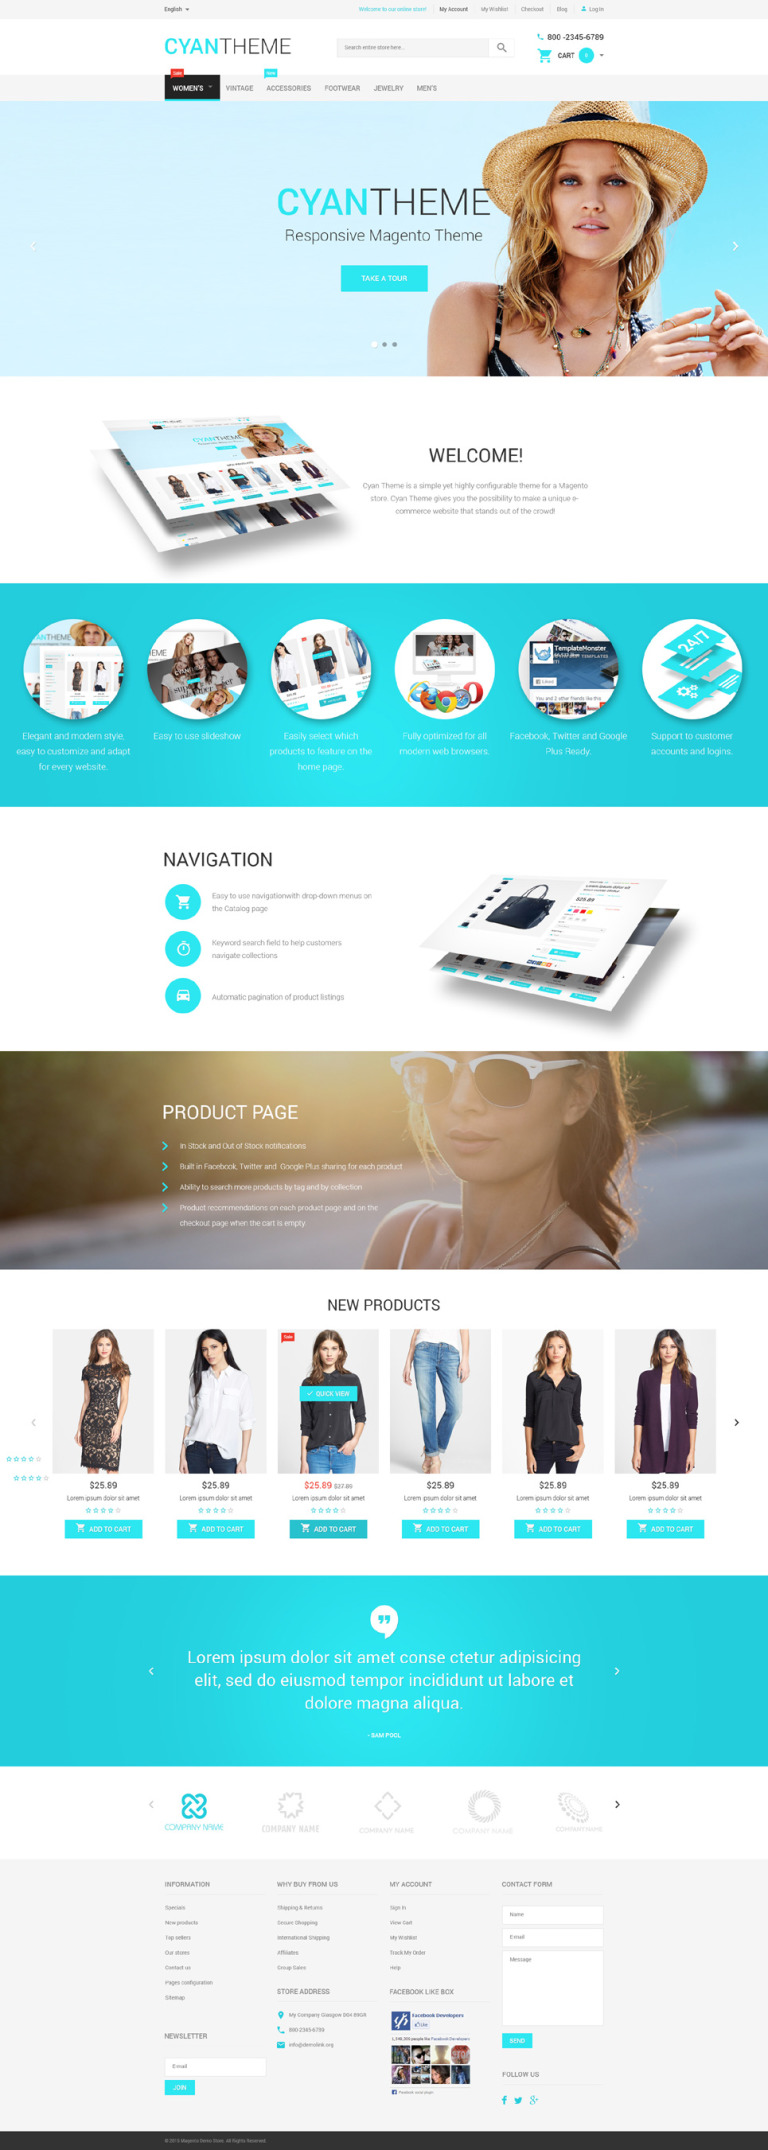 Cyan Theme Magento Theme New Screenshots BIG